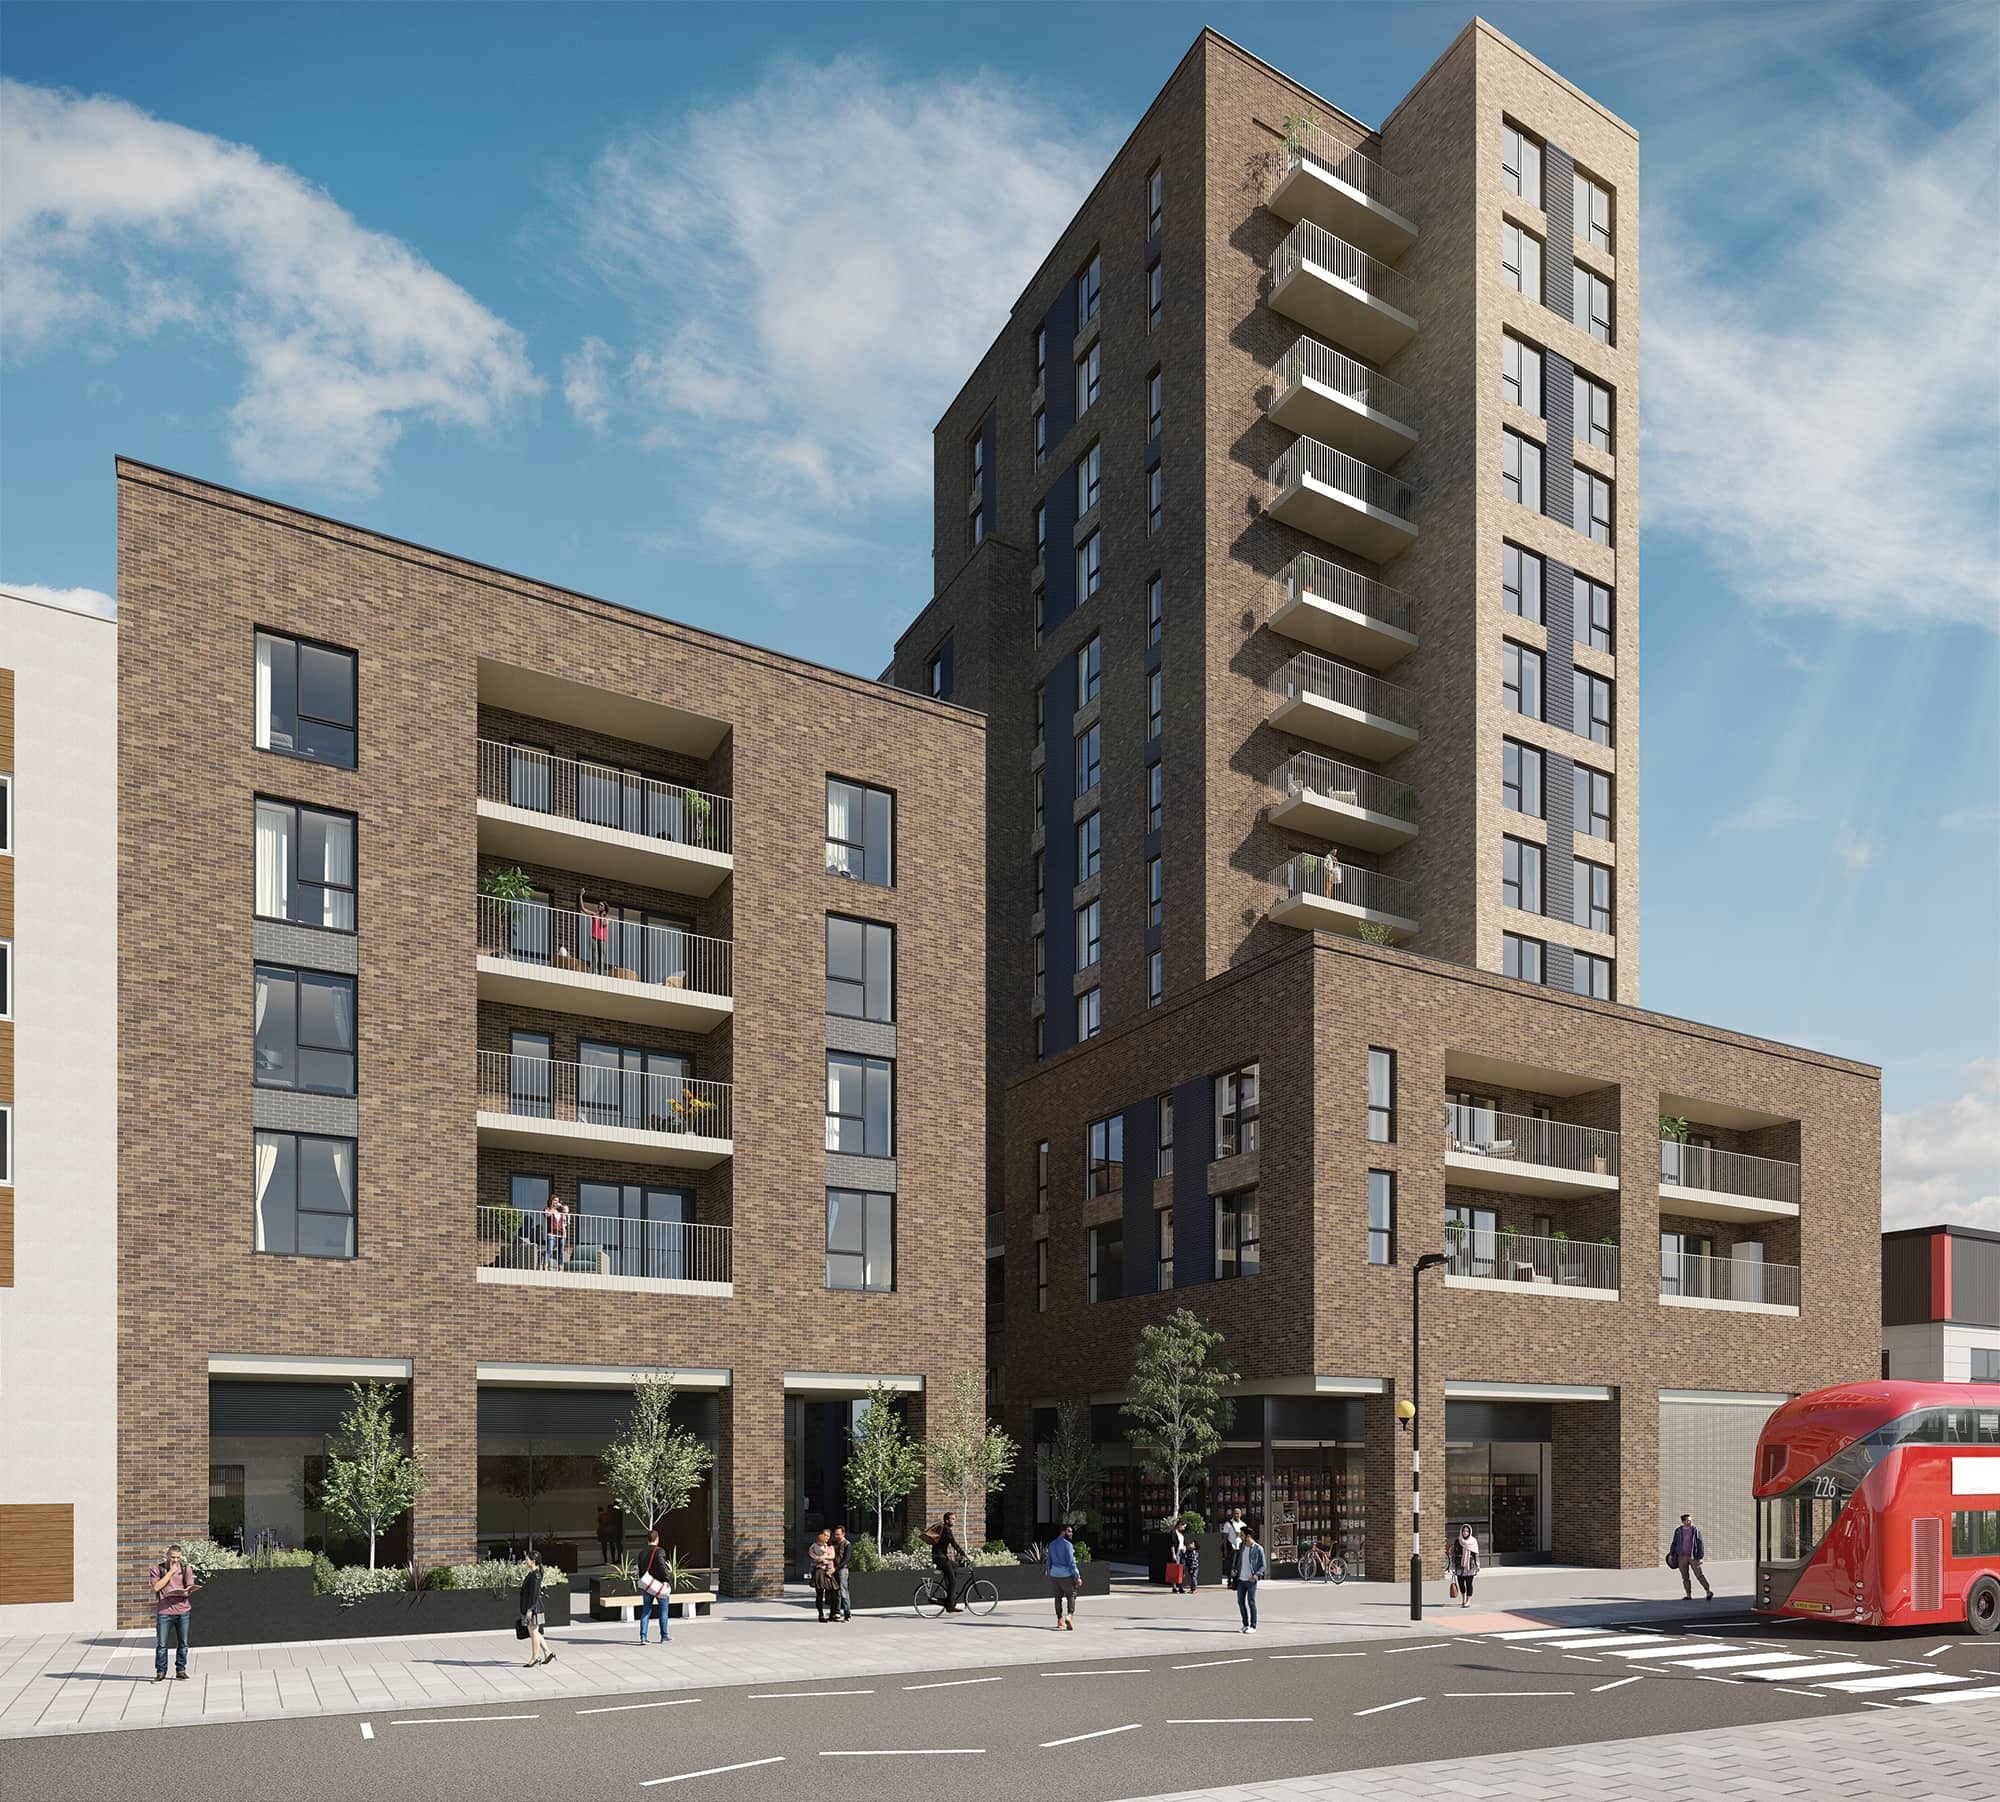 External CGI of Network Homes' Acton Works - Shared Ownership homes available on Share to Buy